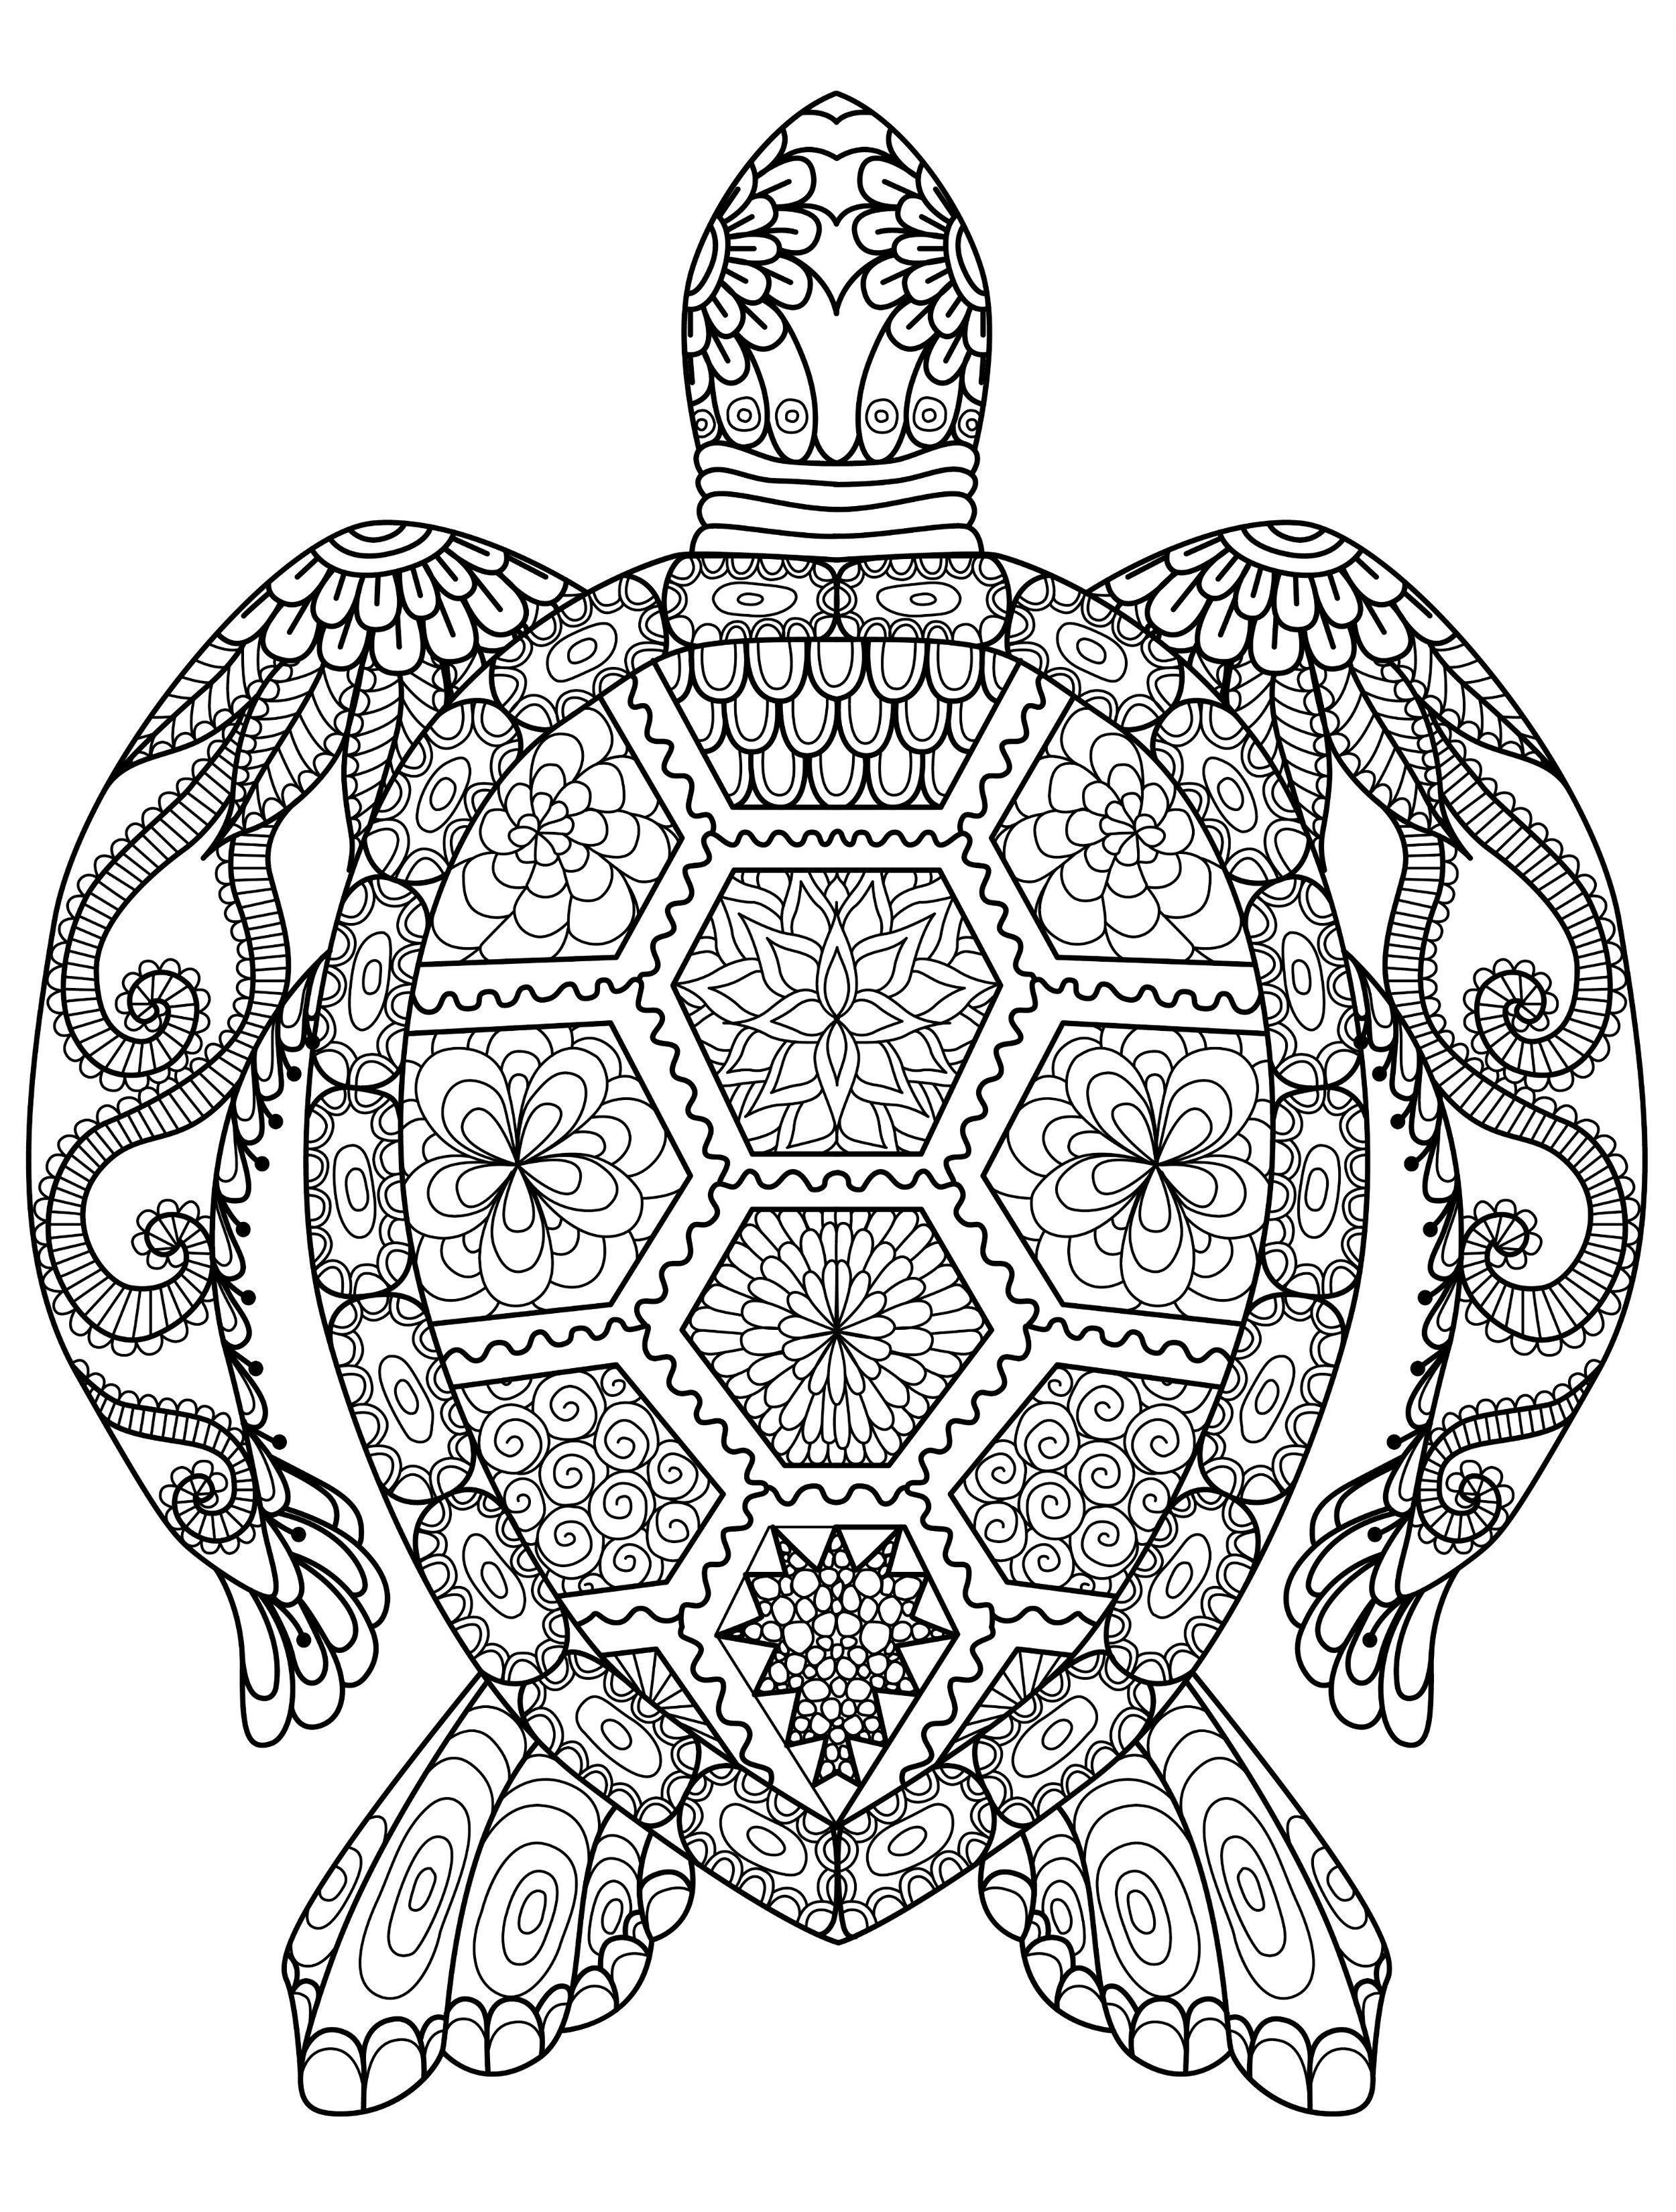 Animal Mandala Coloring Pages | Turtle coloring pages ...Detailed Mandala Coloring Pages For Adults